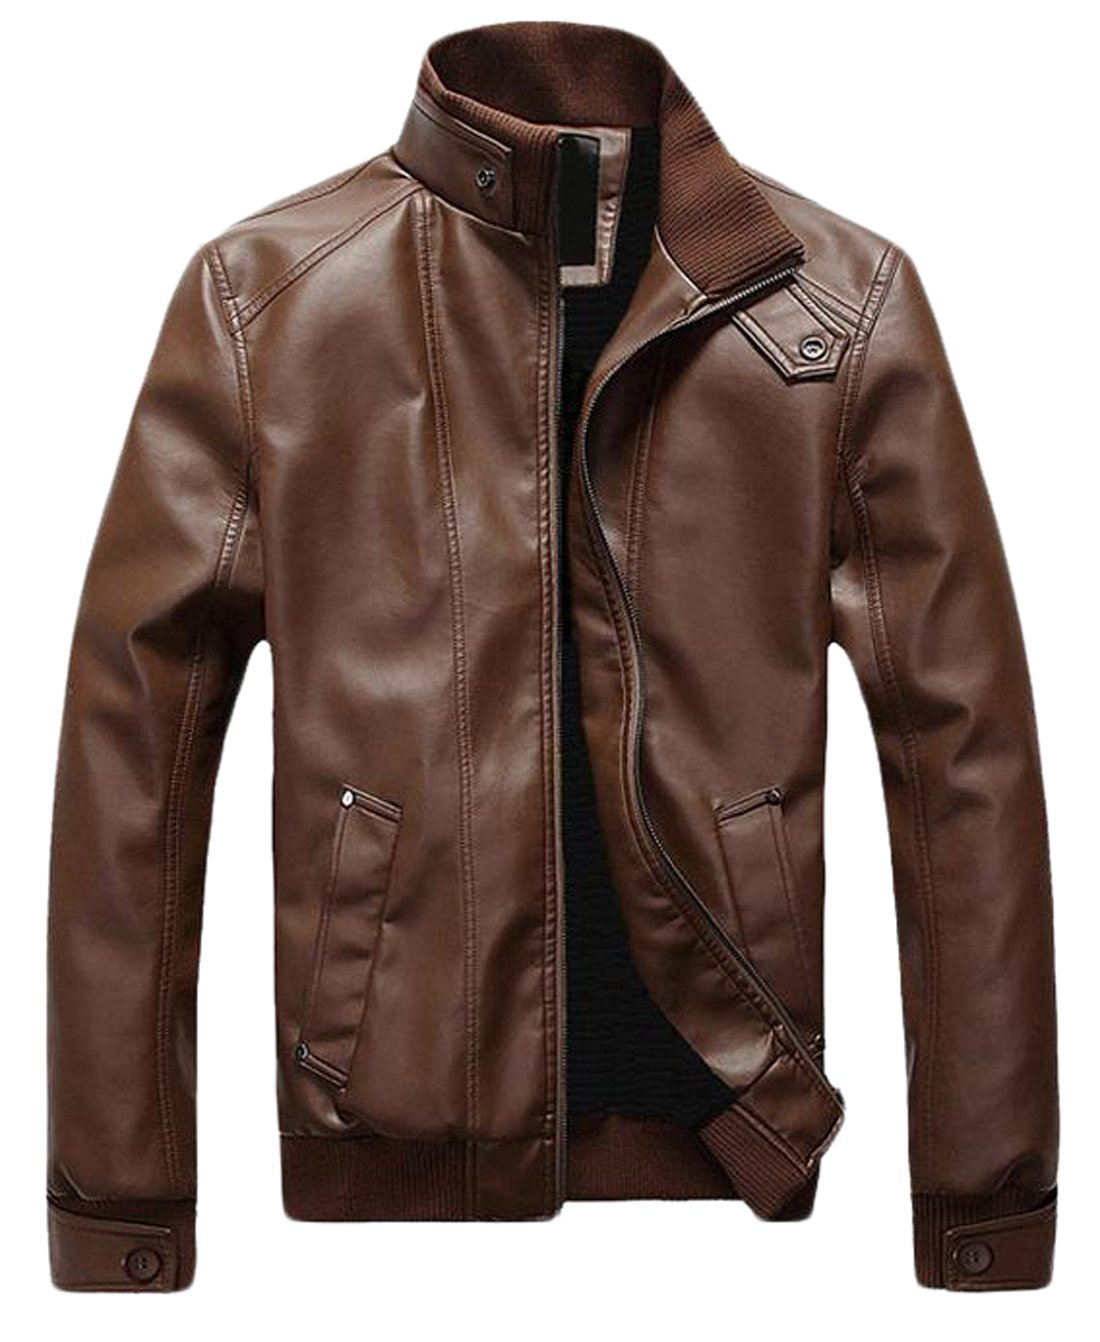 Men's Vintage Stand Collar Thick Leather Jackets Brown L